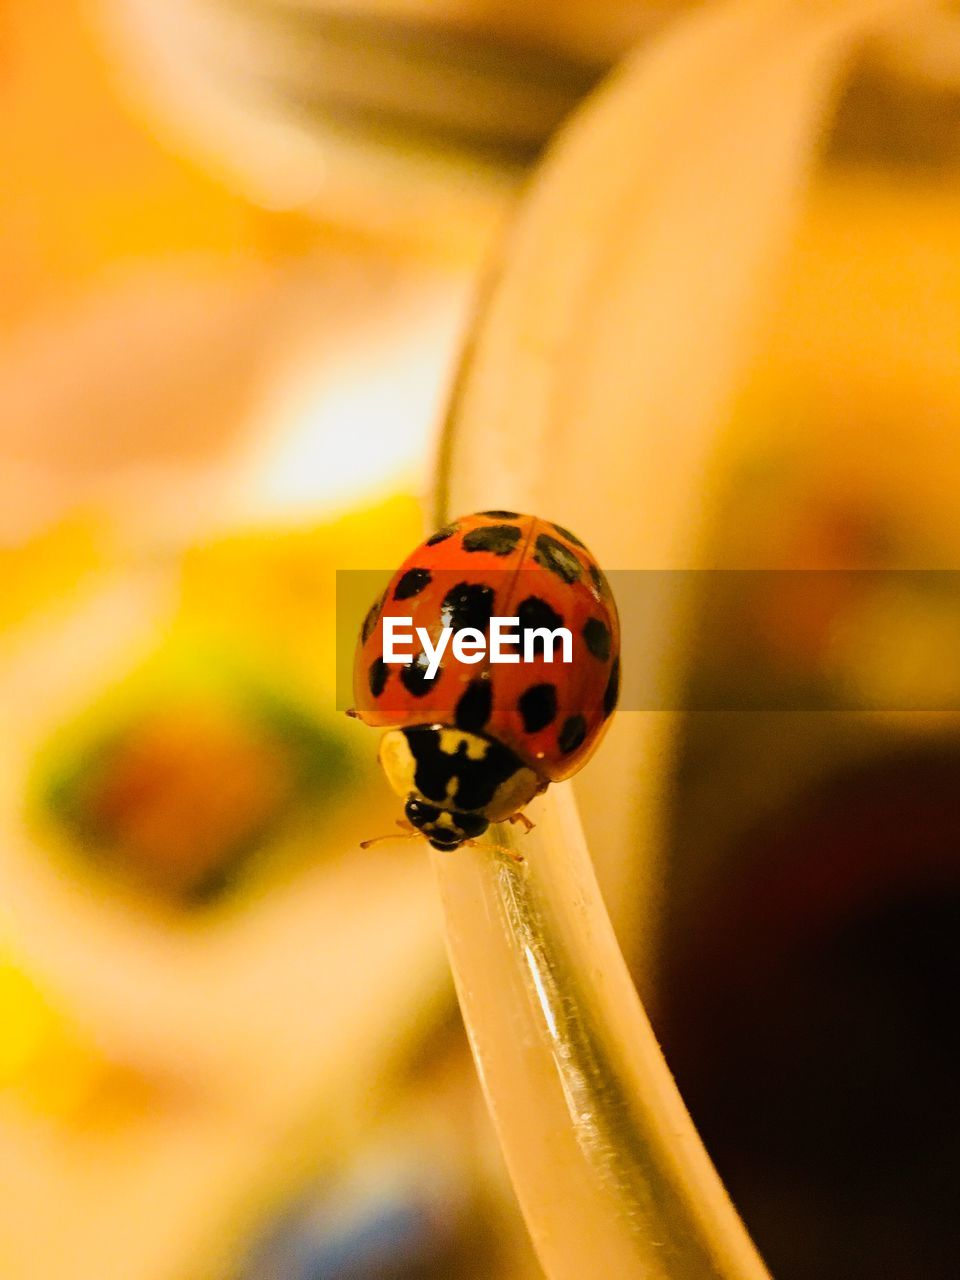 ladybug, beetle, invertebrate, spotted, insect, animal themes, one animal, focus on foreground, animal wildlife, close-up, animals in the wild, animal, plant, red, orange color, fragility, vulnerability, flower, selective focus, nature